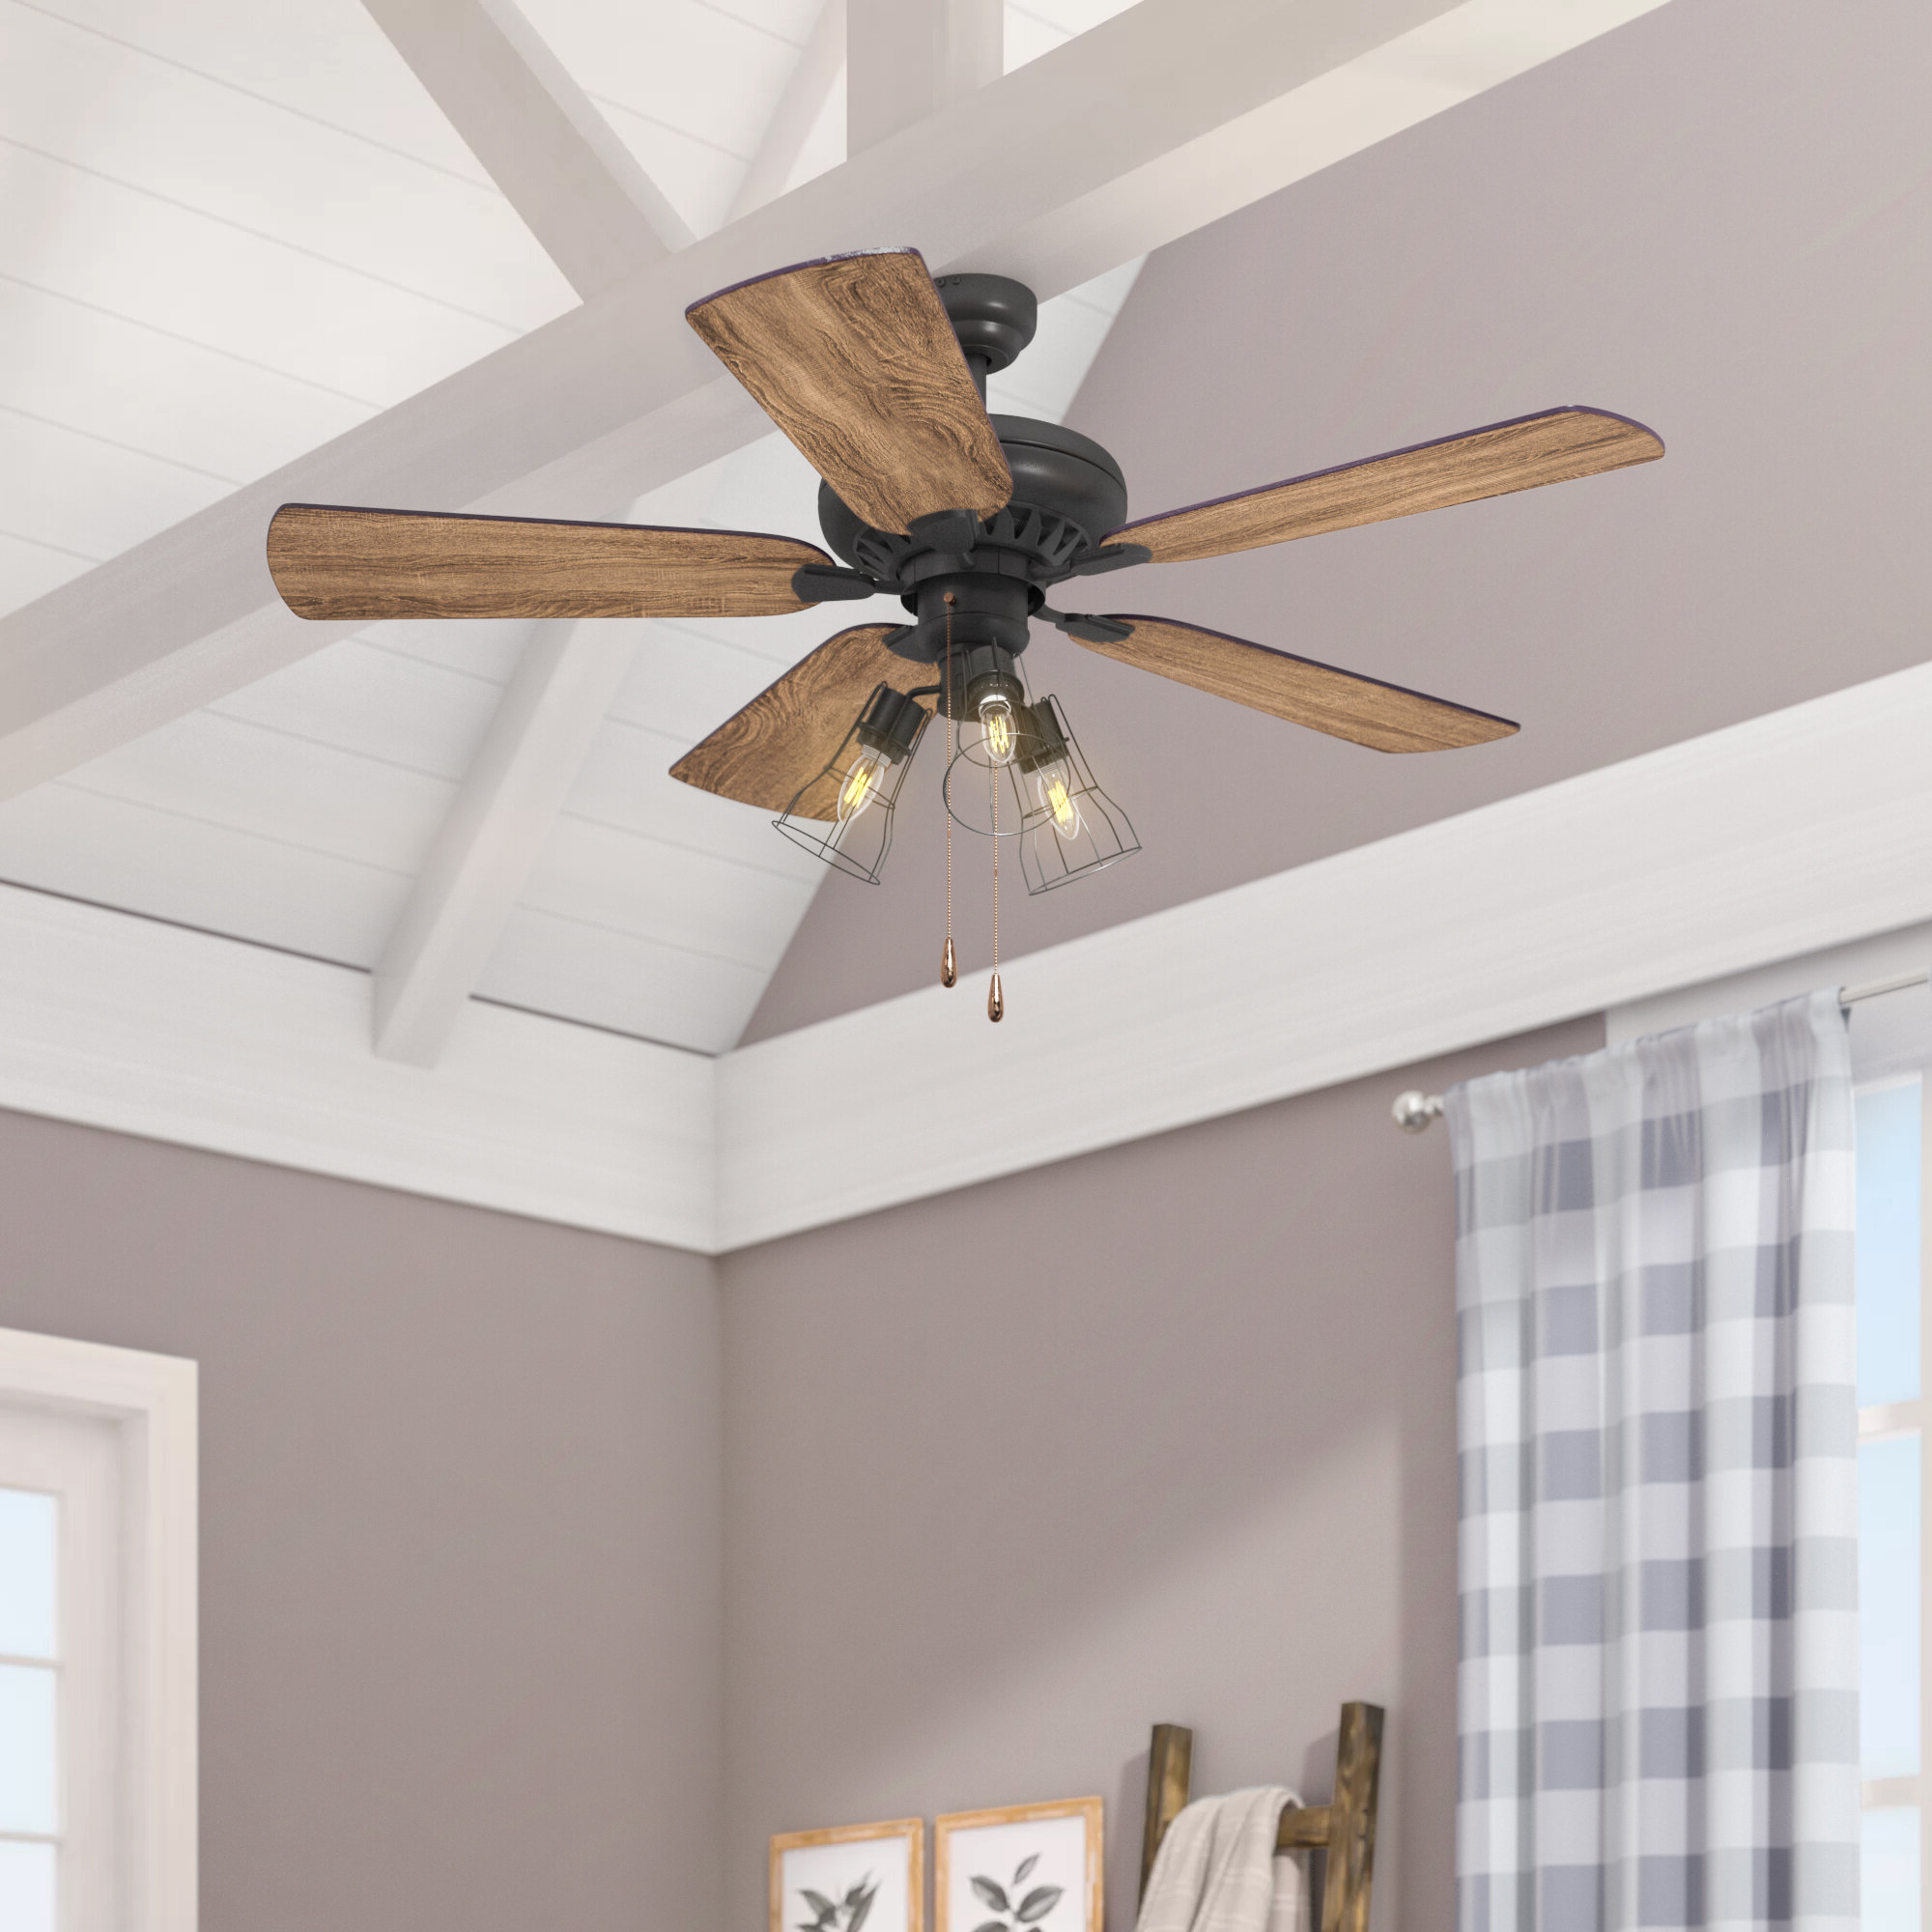 """Widely Used O'hanlon 5 Blade Led Ceiling Fans Inside 52"""" Theron 5 Blade Led Ceiling Fan (View 5 of 20)"""